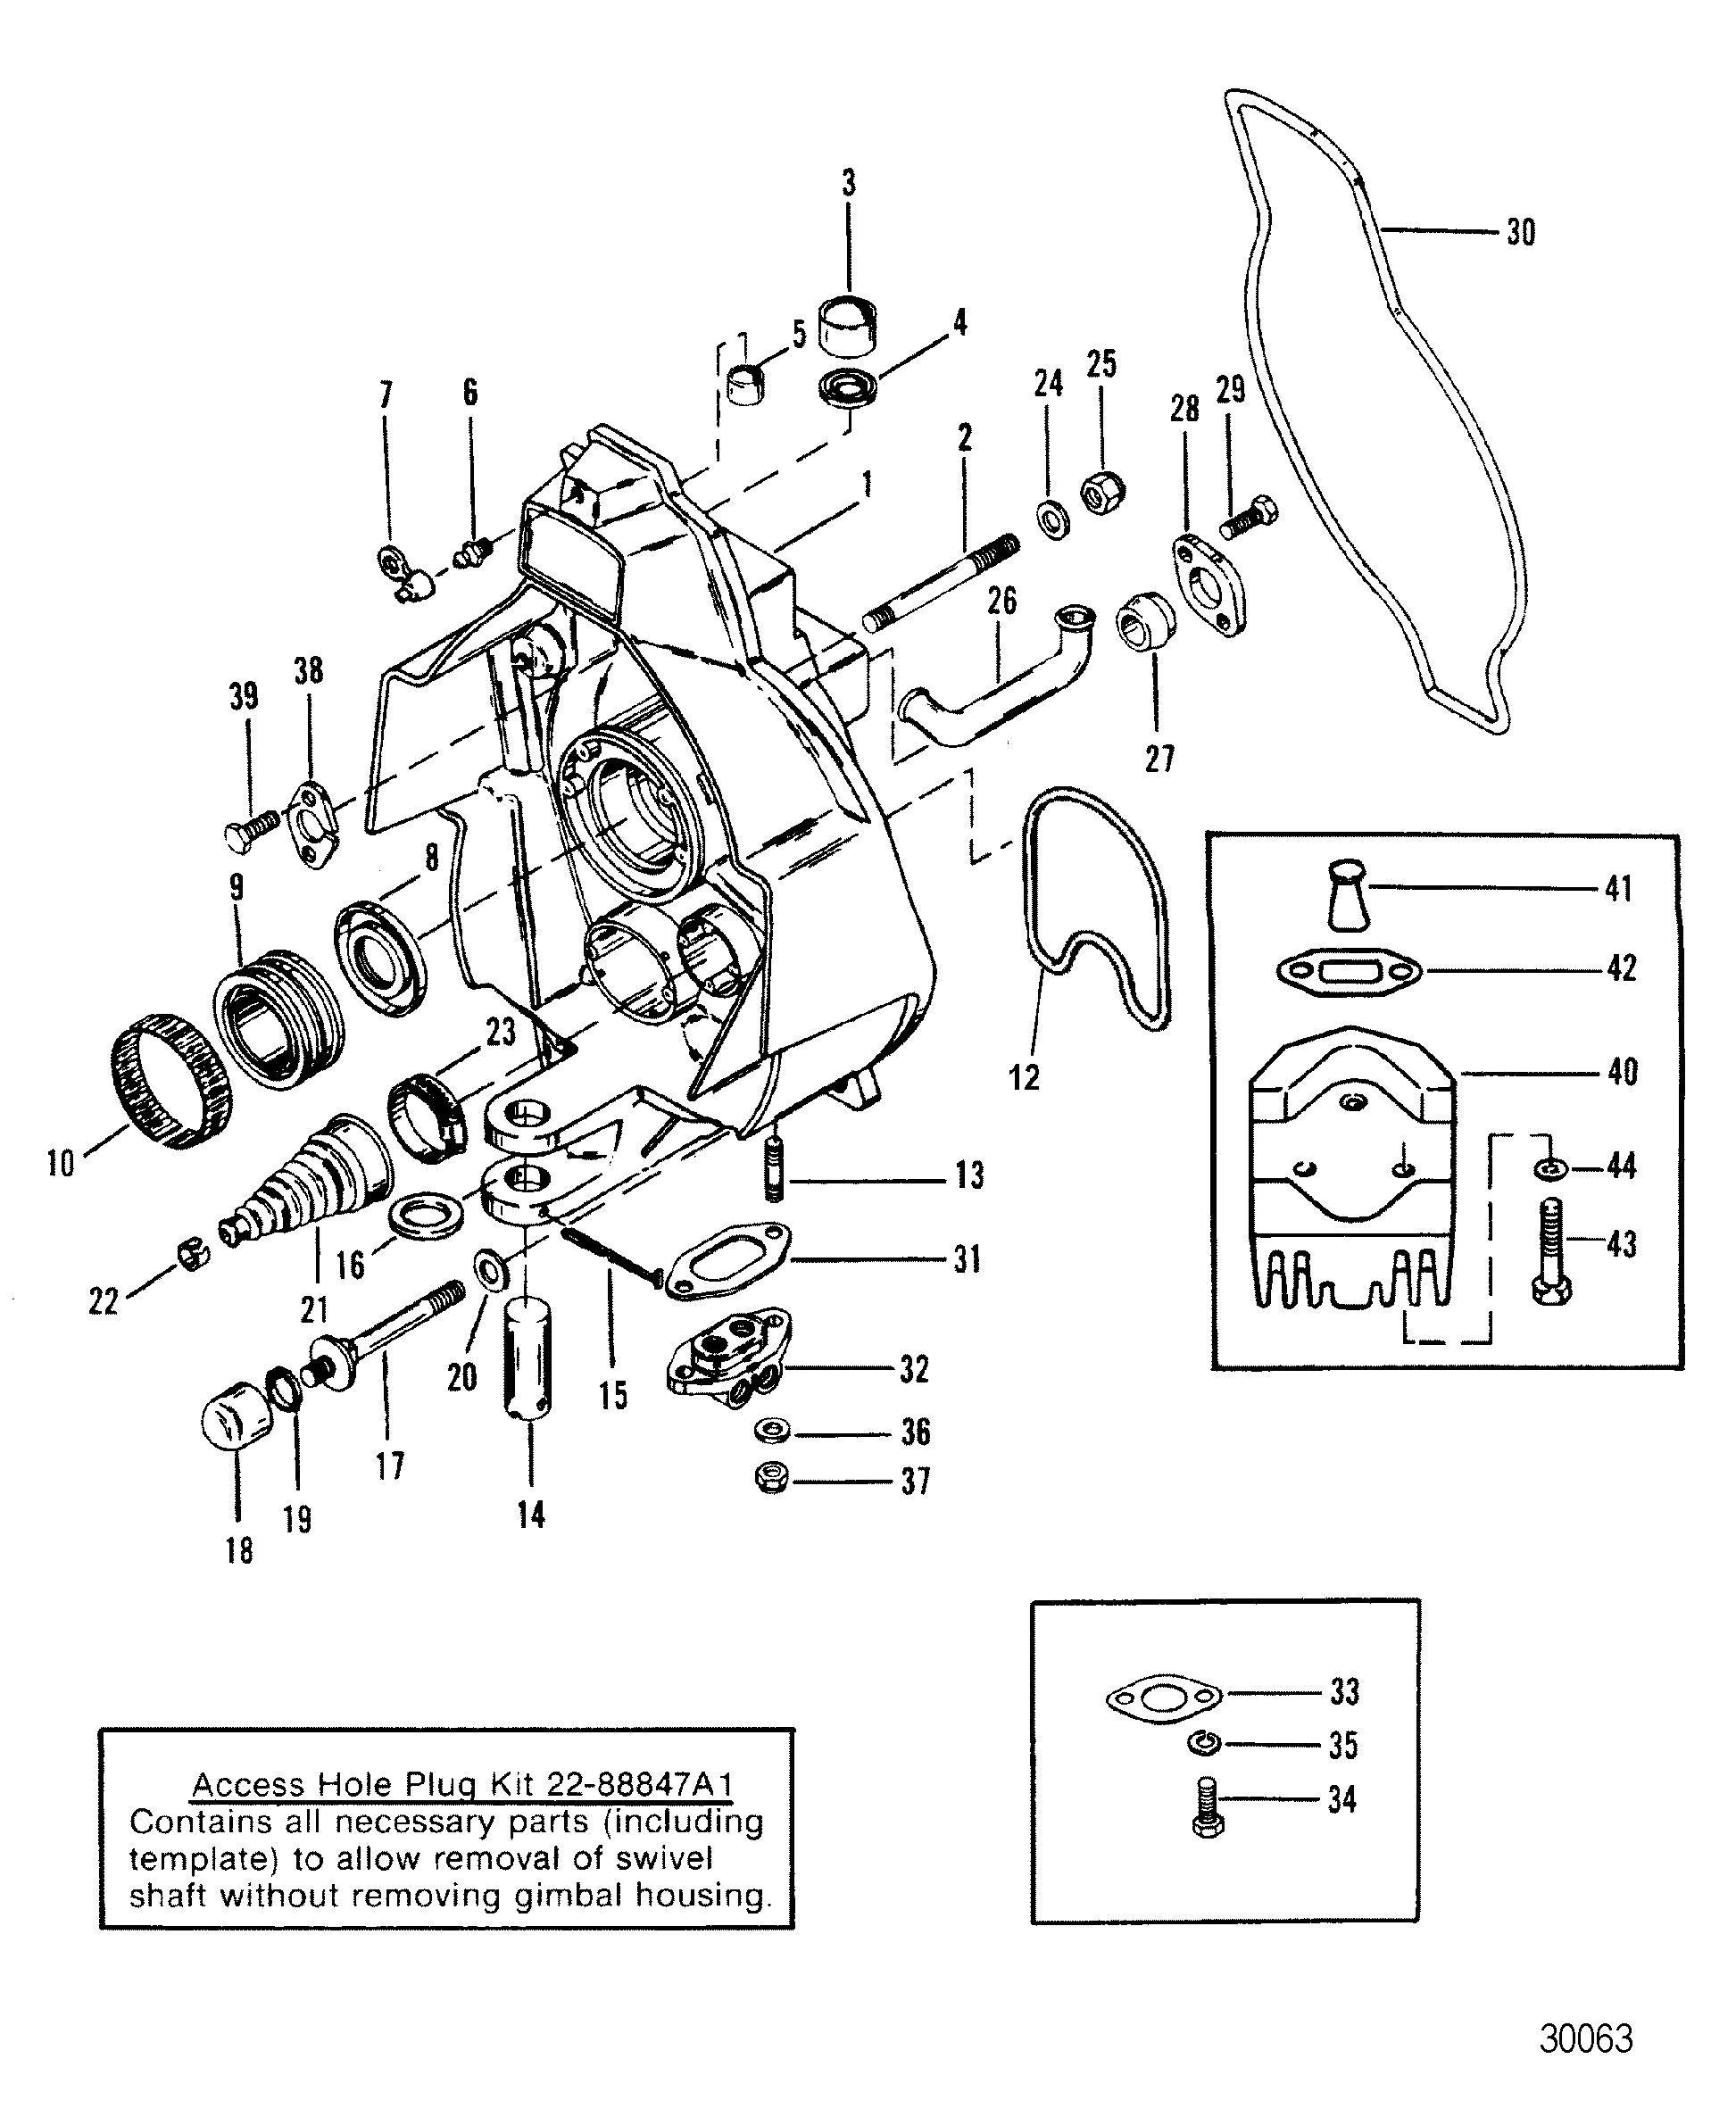 alpha one sterndrive parts diagram tibia and fibula blank gimbal housing square upper swivel shaft for